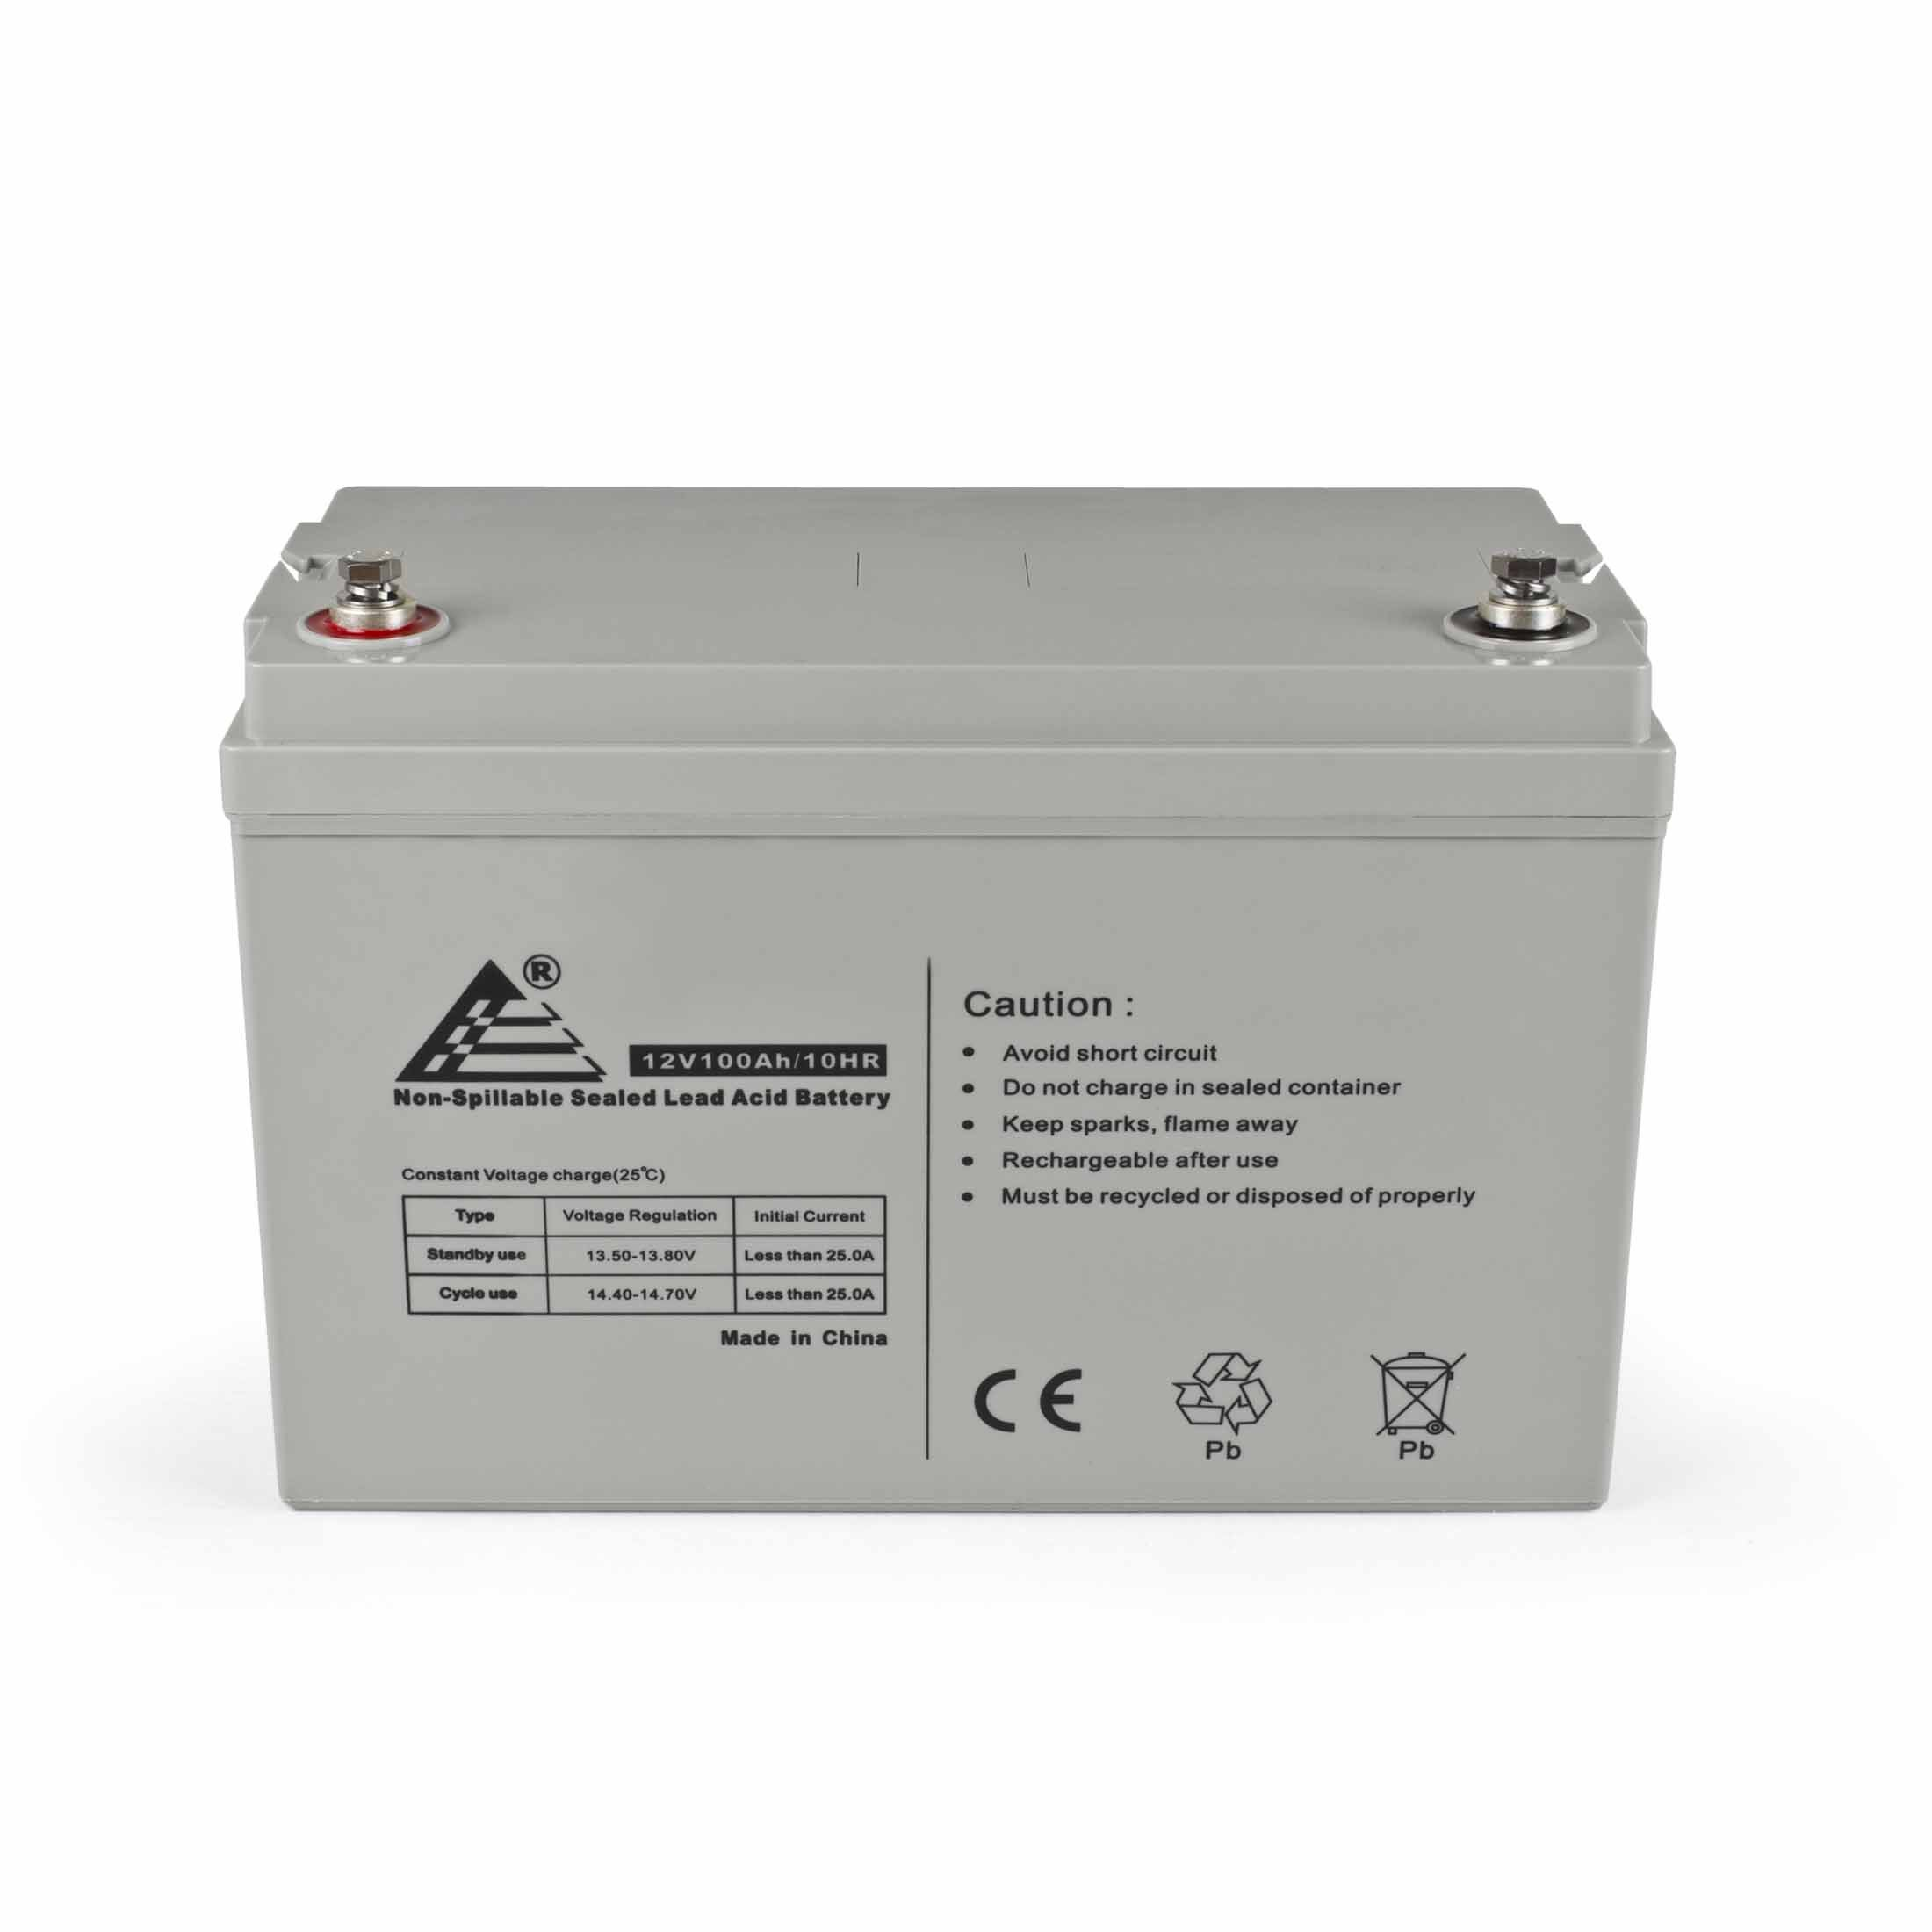 ExpertPower 12V 100Ah Solar Wind Power AGM Sealed Lead Acid Battery, 65 Pound by ExpertPower